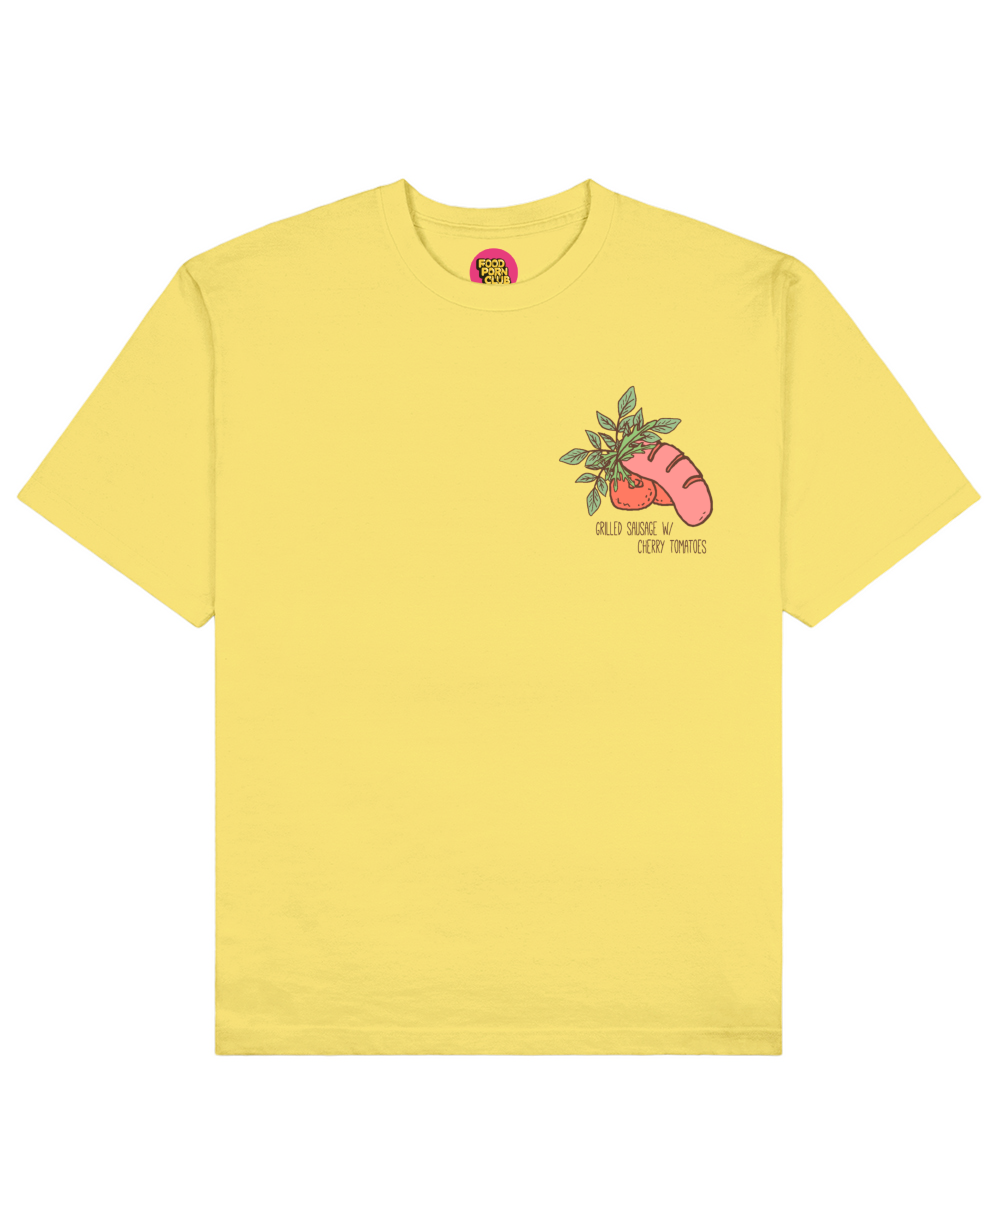 Grilled Sausage Print T-Shirt in Light Yellow - T-Shirts - FOOD PORN CLUB - BRANMA